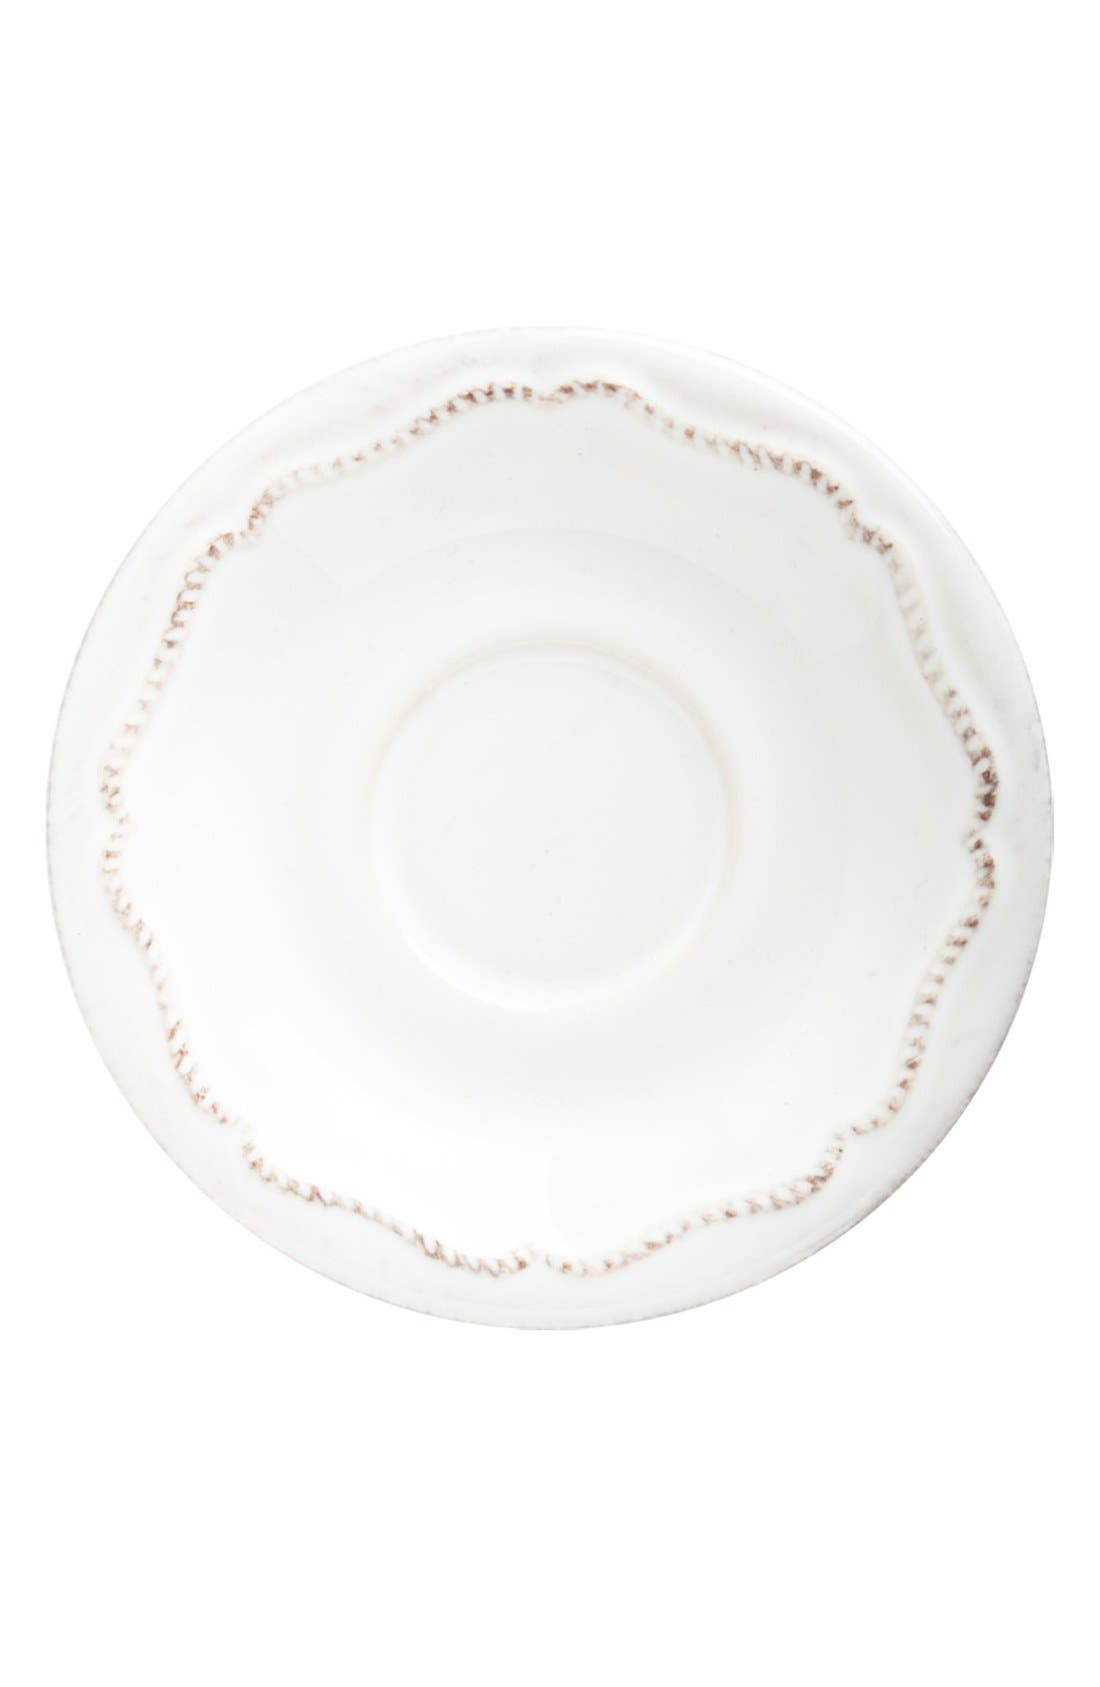 'Berry and Thread' Demitasse Saucer,                         Main,                         color, Whitewash